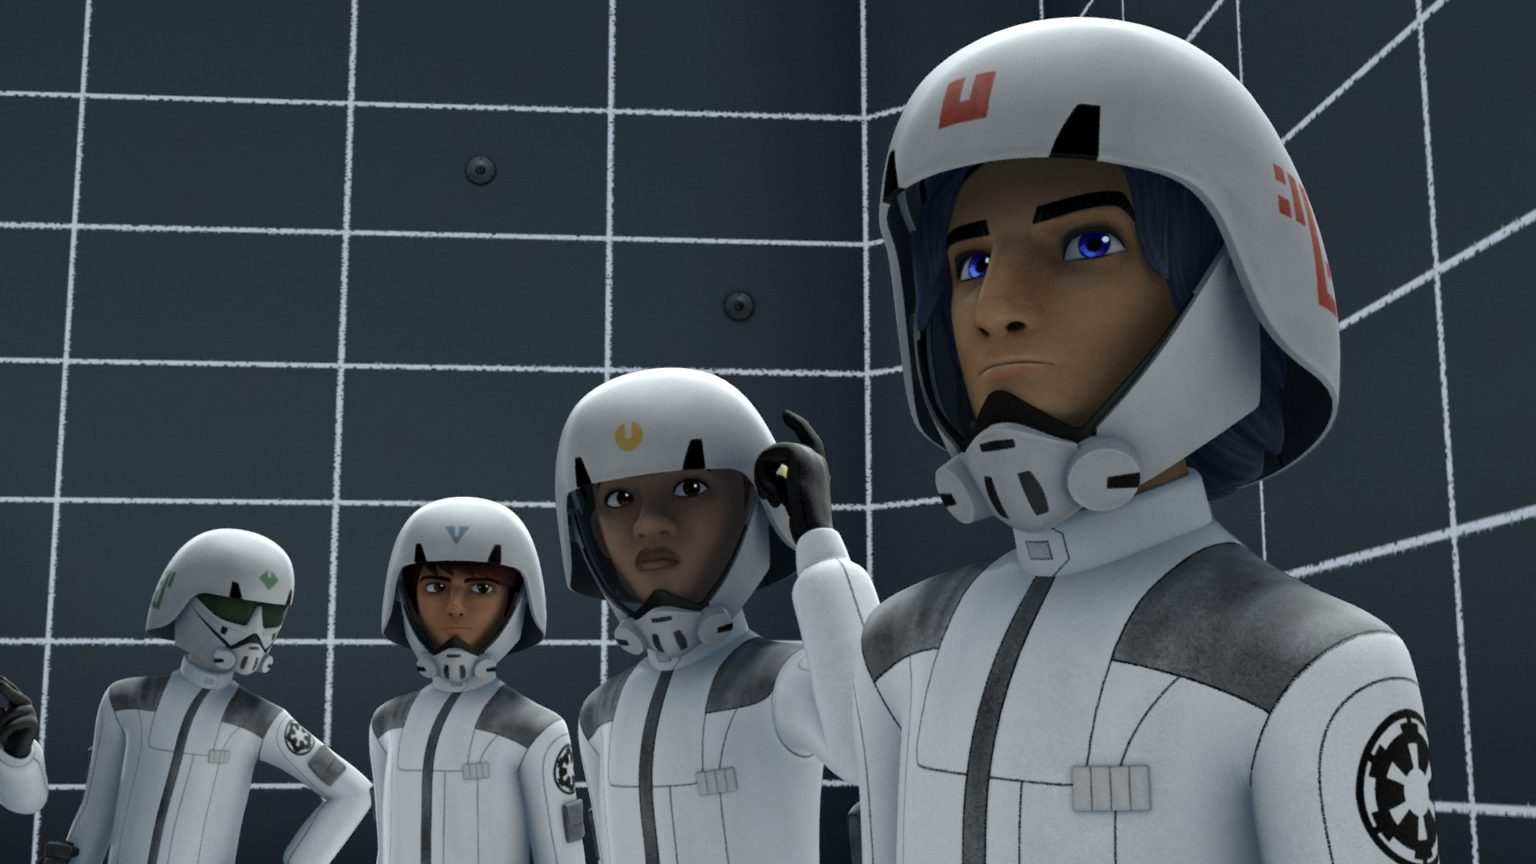 Jai Kell, Zare Leonis, and Ezra Bridger as cadets in the Lothal Imperial Academy